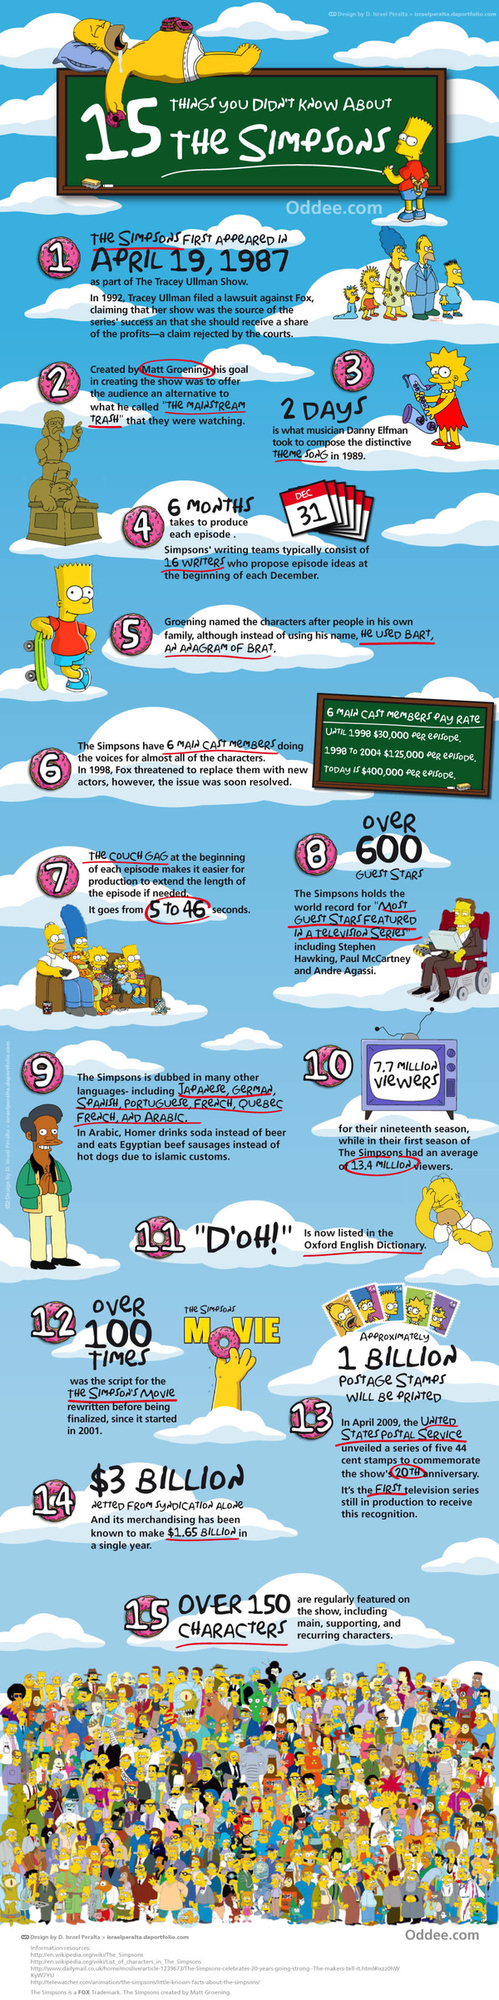 15 Thing You Didn't Know About The Simpsons